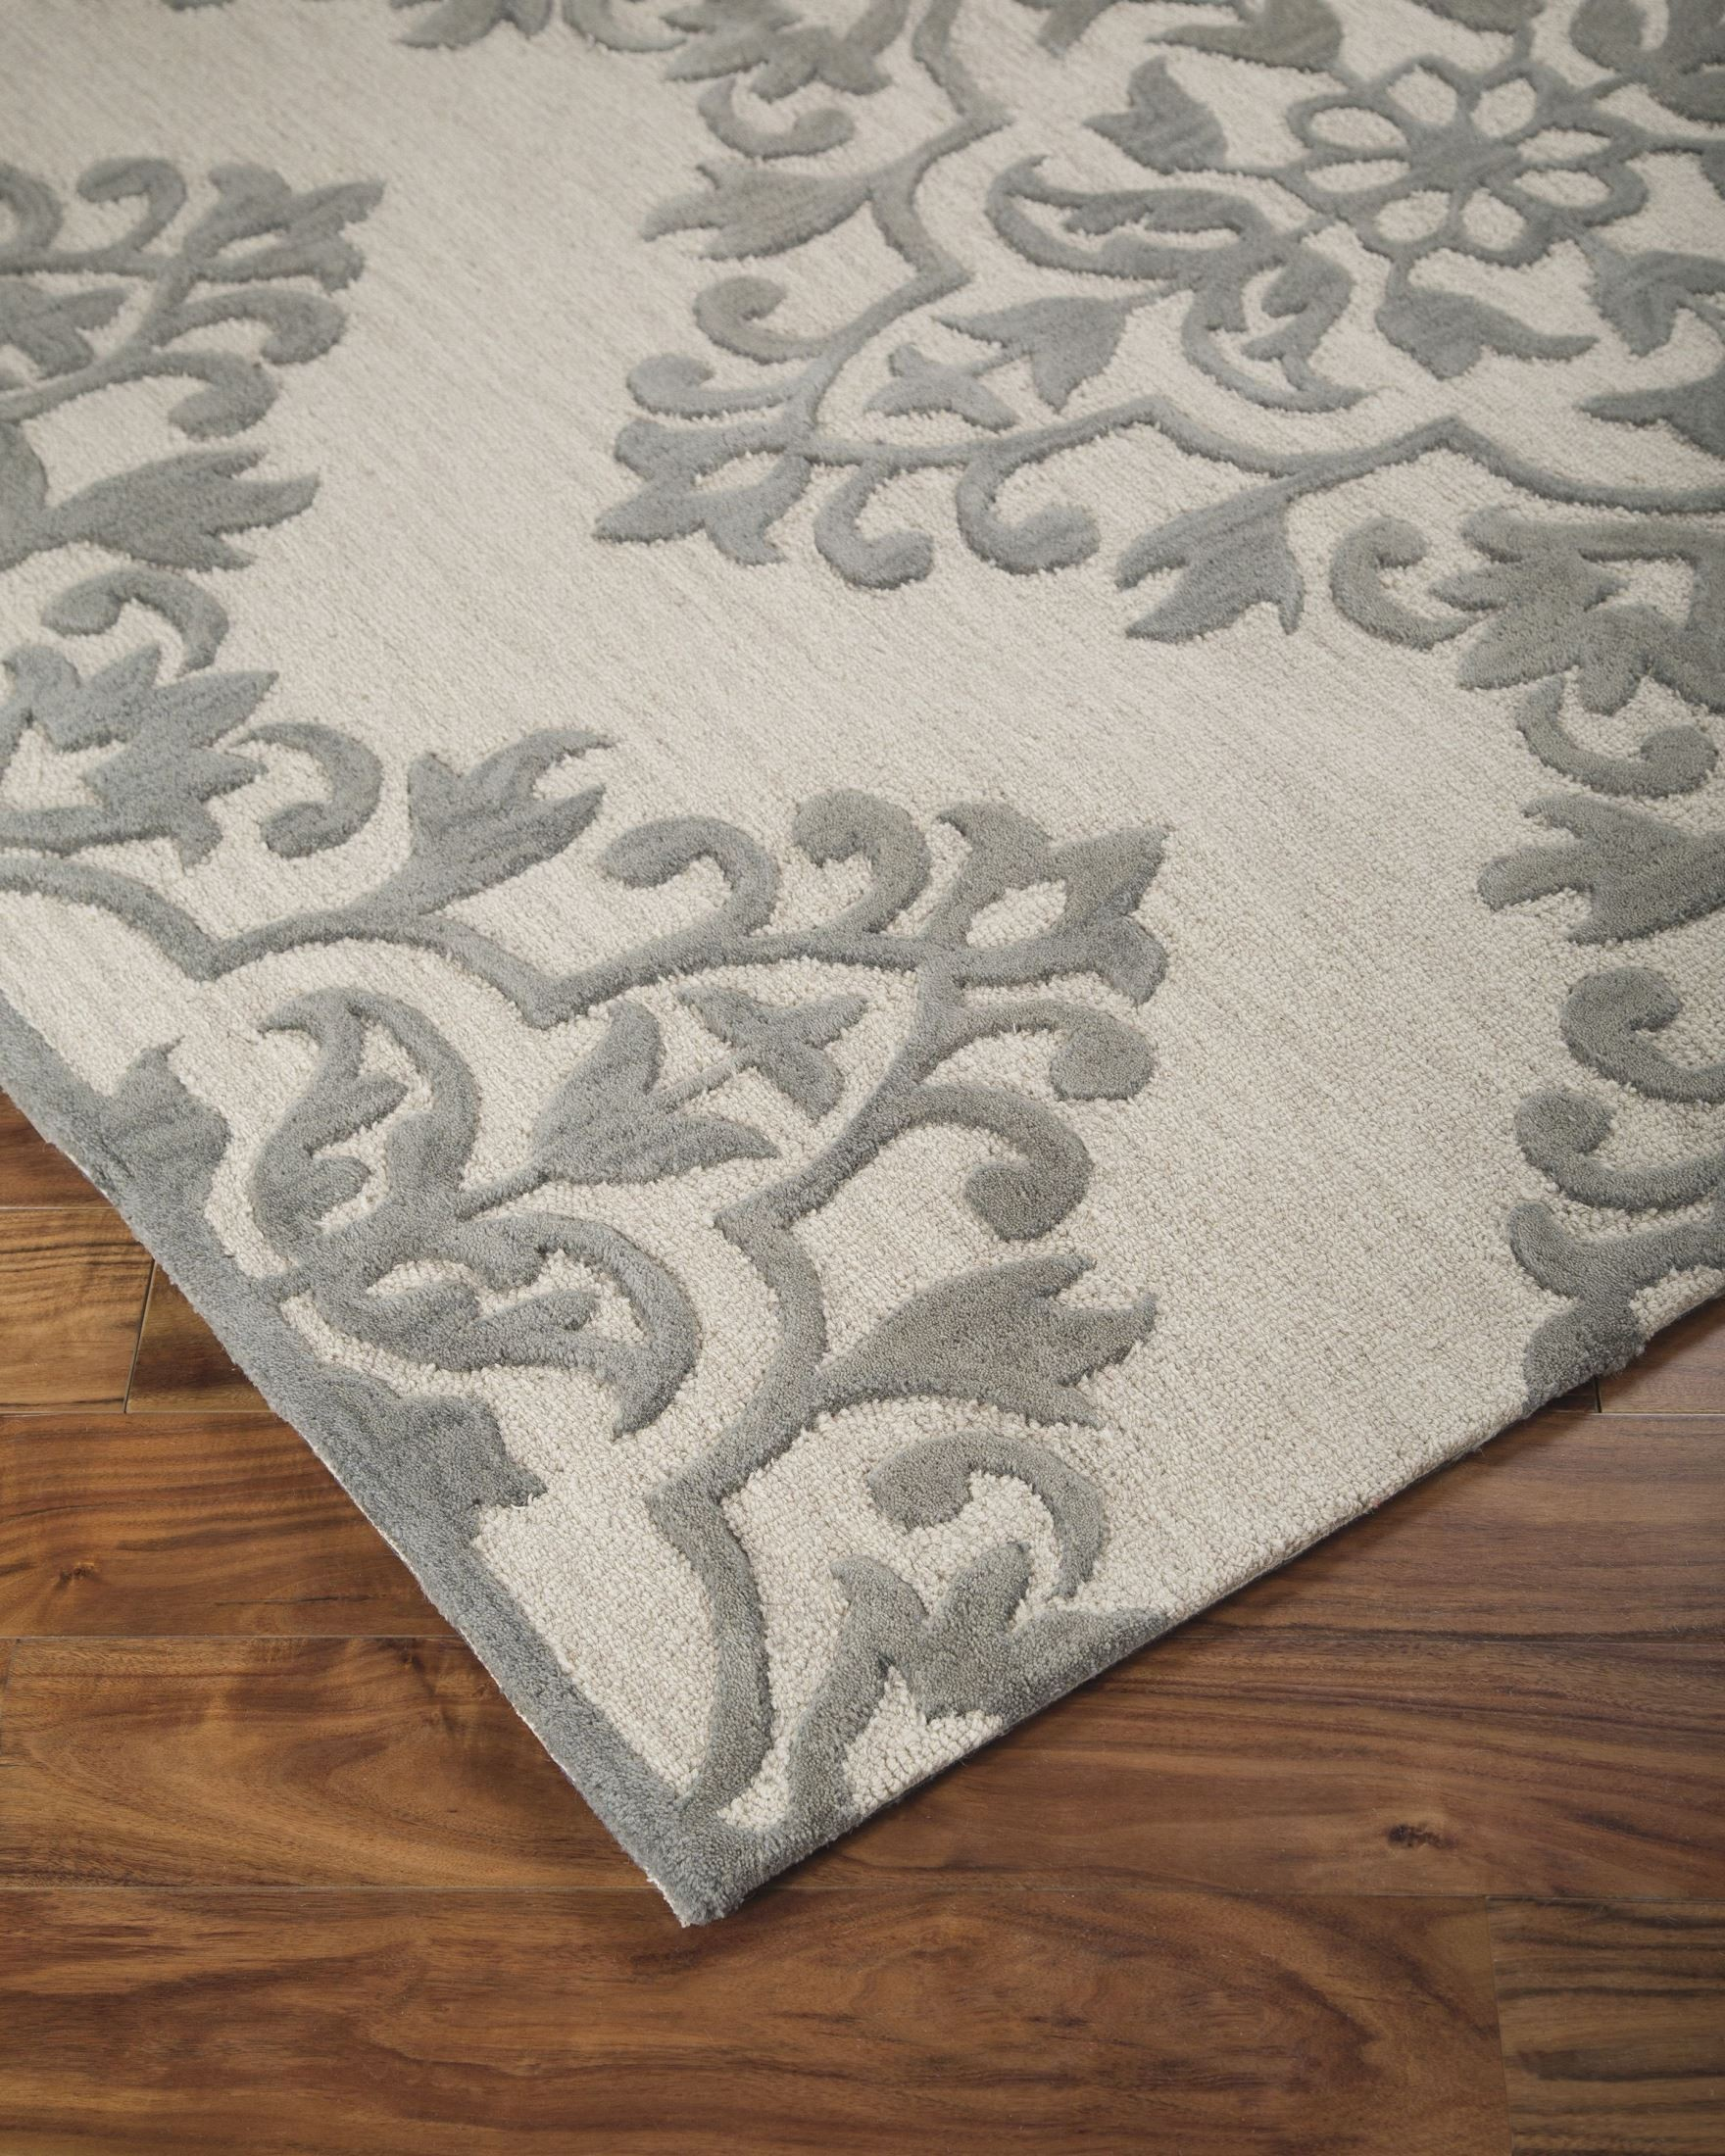 Bafferts Tan And Gray Large Rug From Ashley R400441